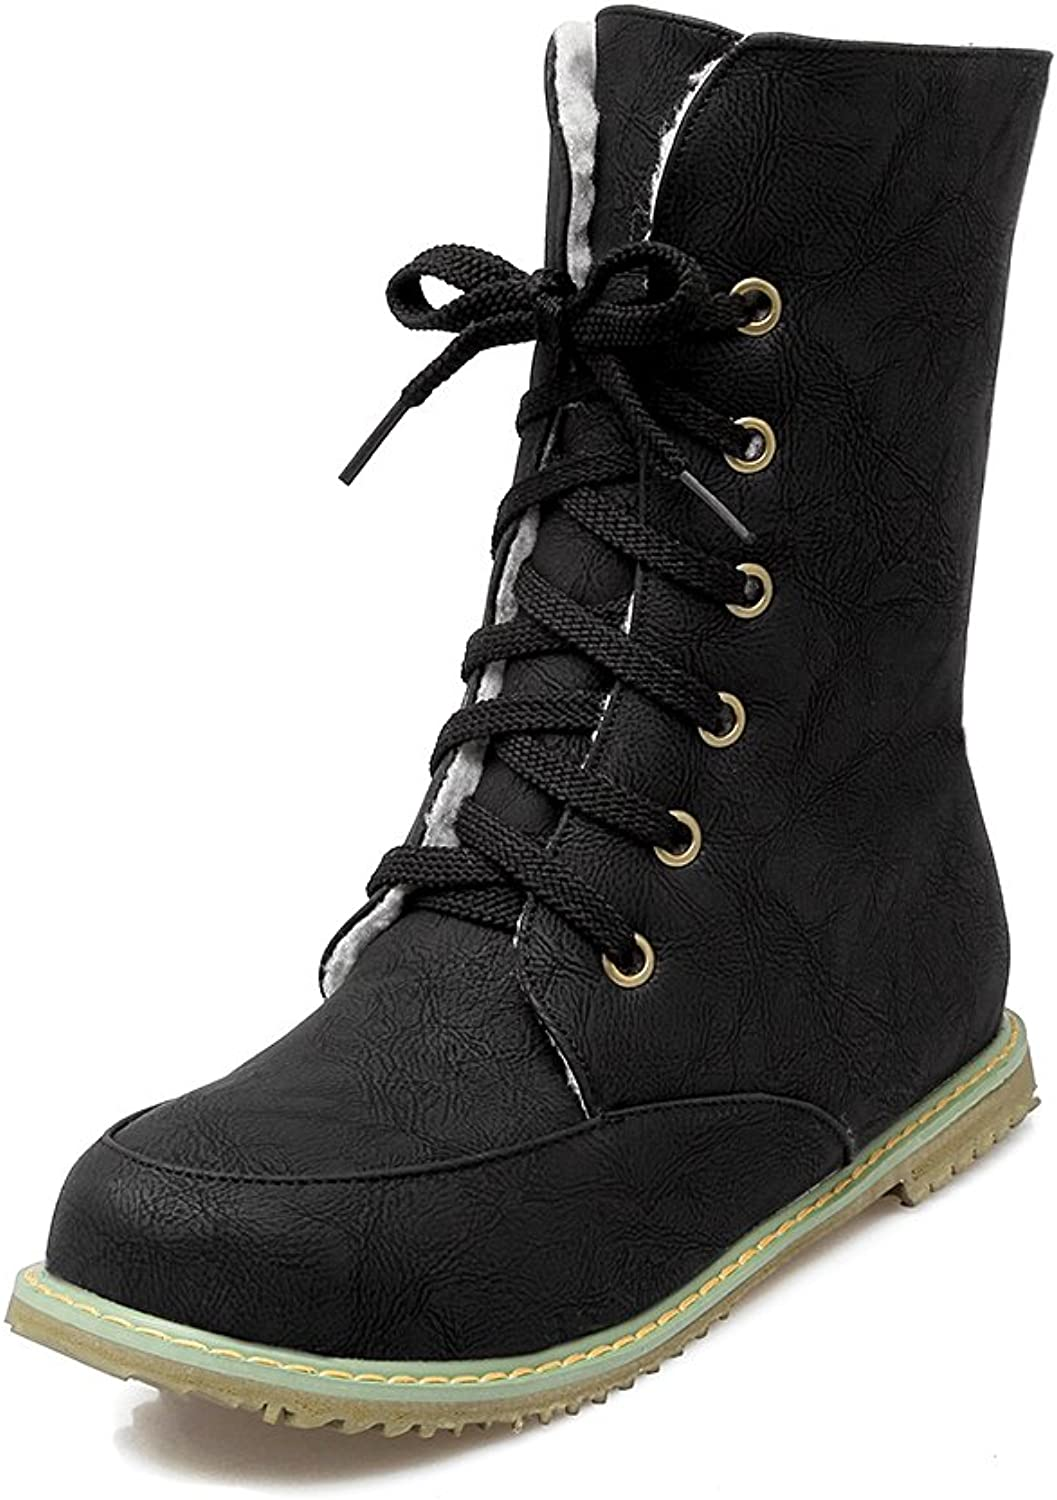 AIWEIYi Womens Flat shoes Warm Fur Lining Lace up Motorcycle Martin Boots Snow Boots Black